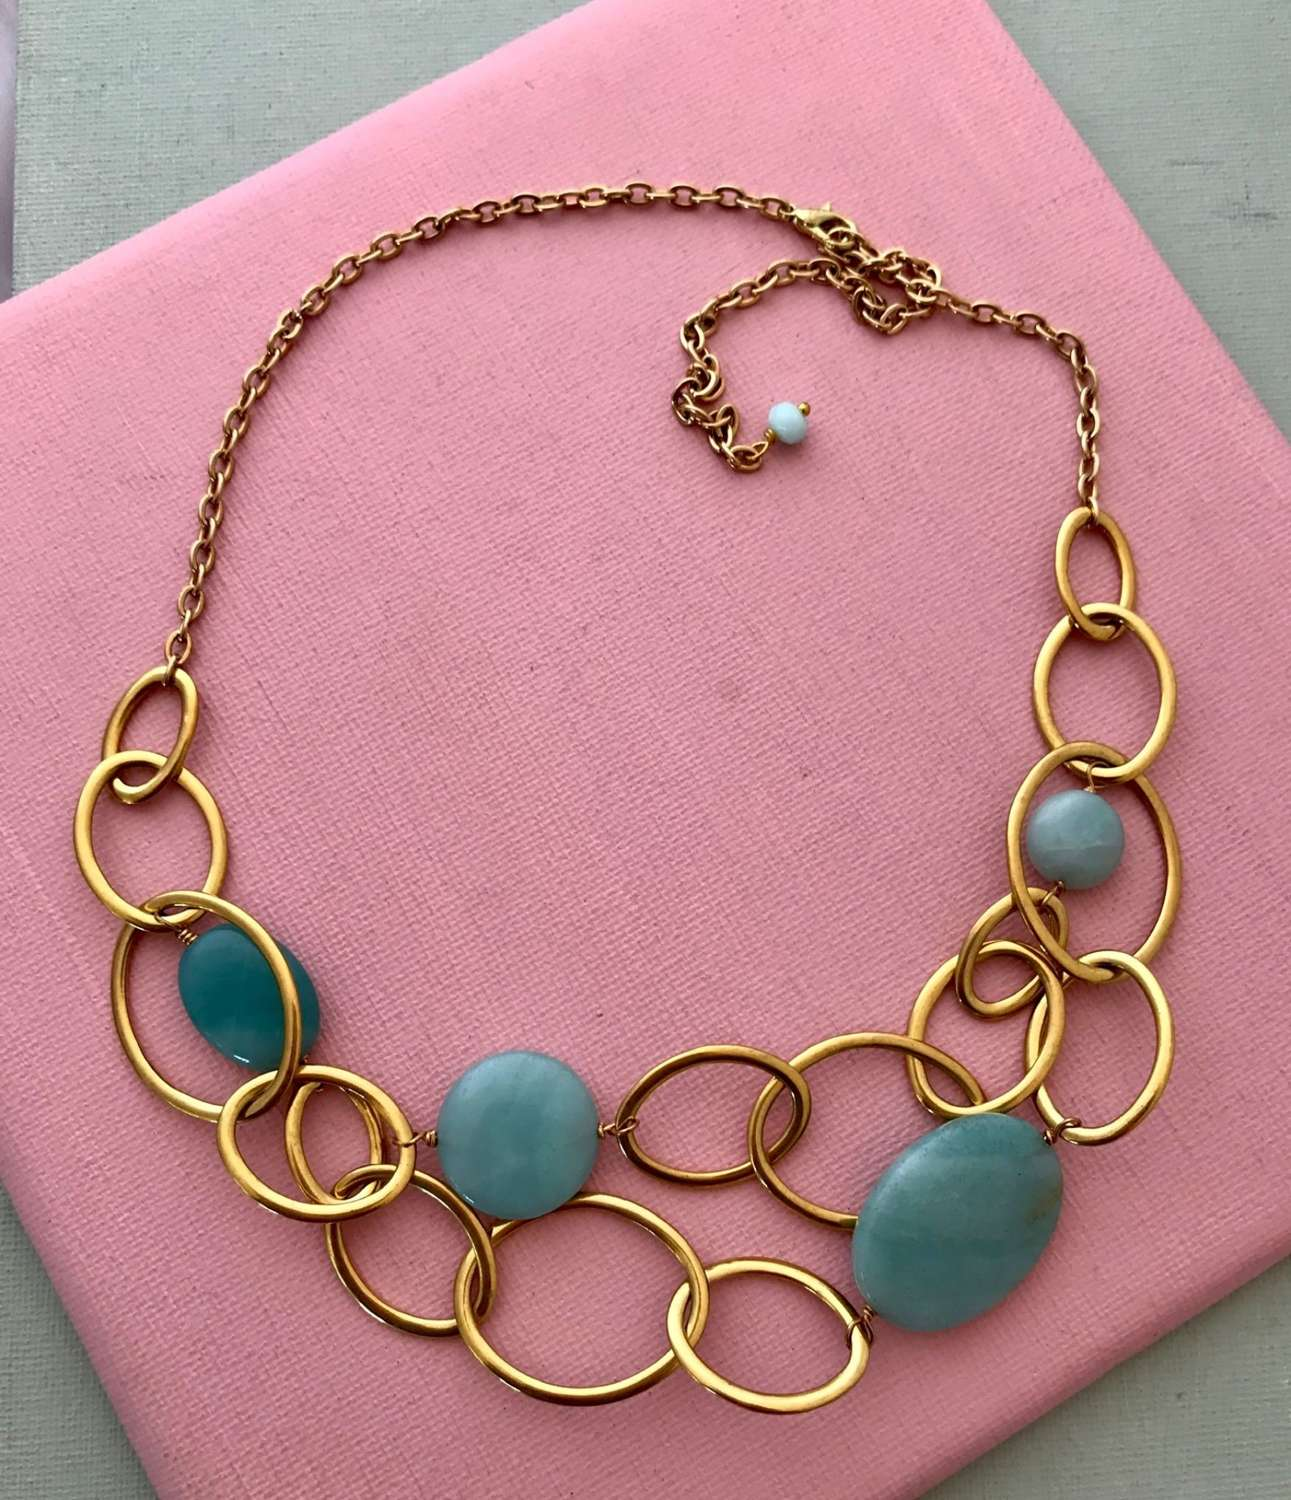 Mandy necklace gold/duck egg